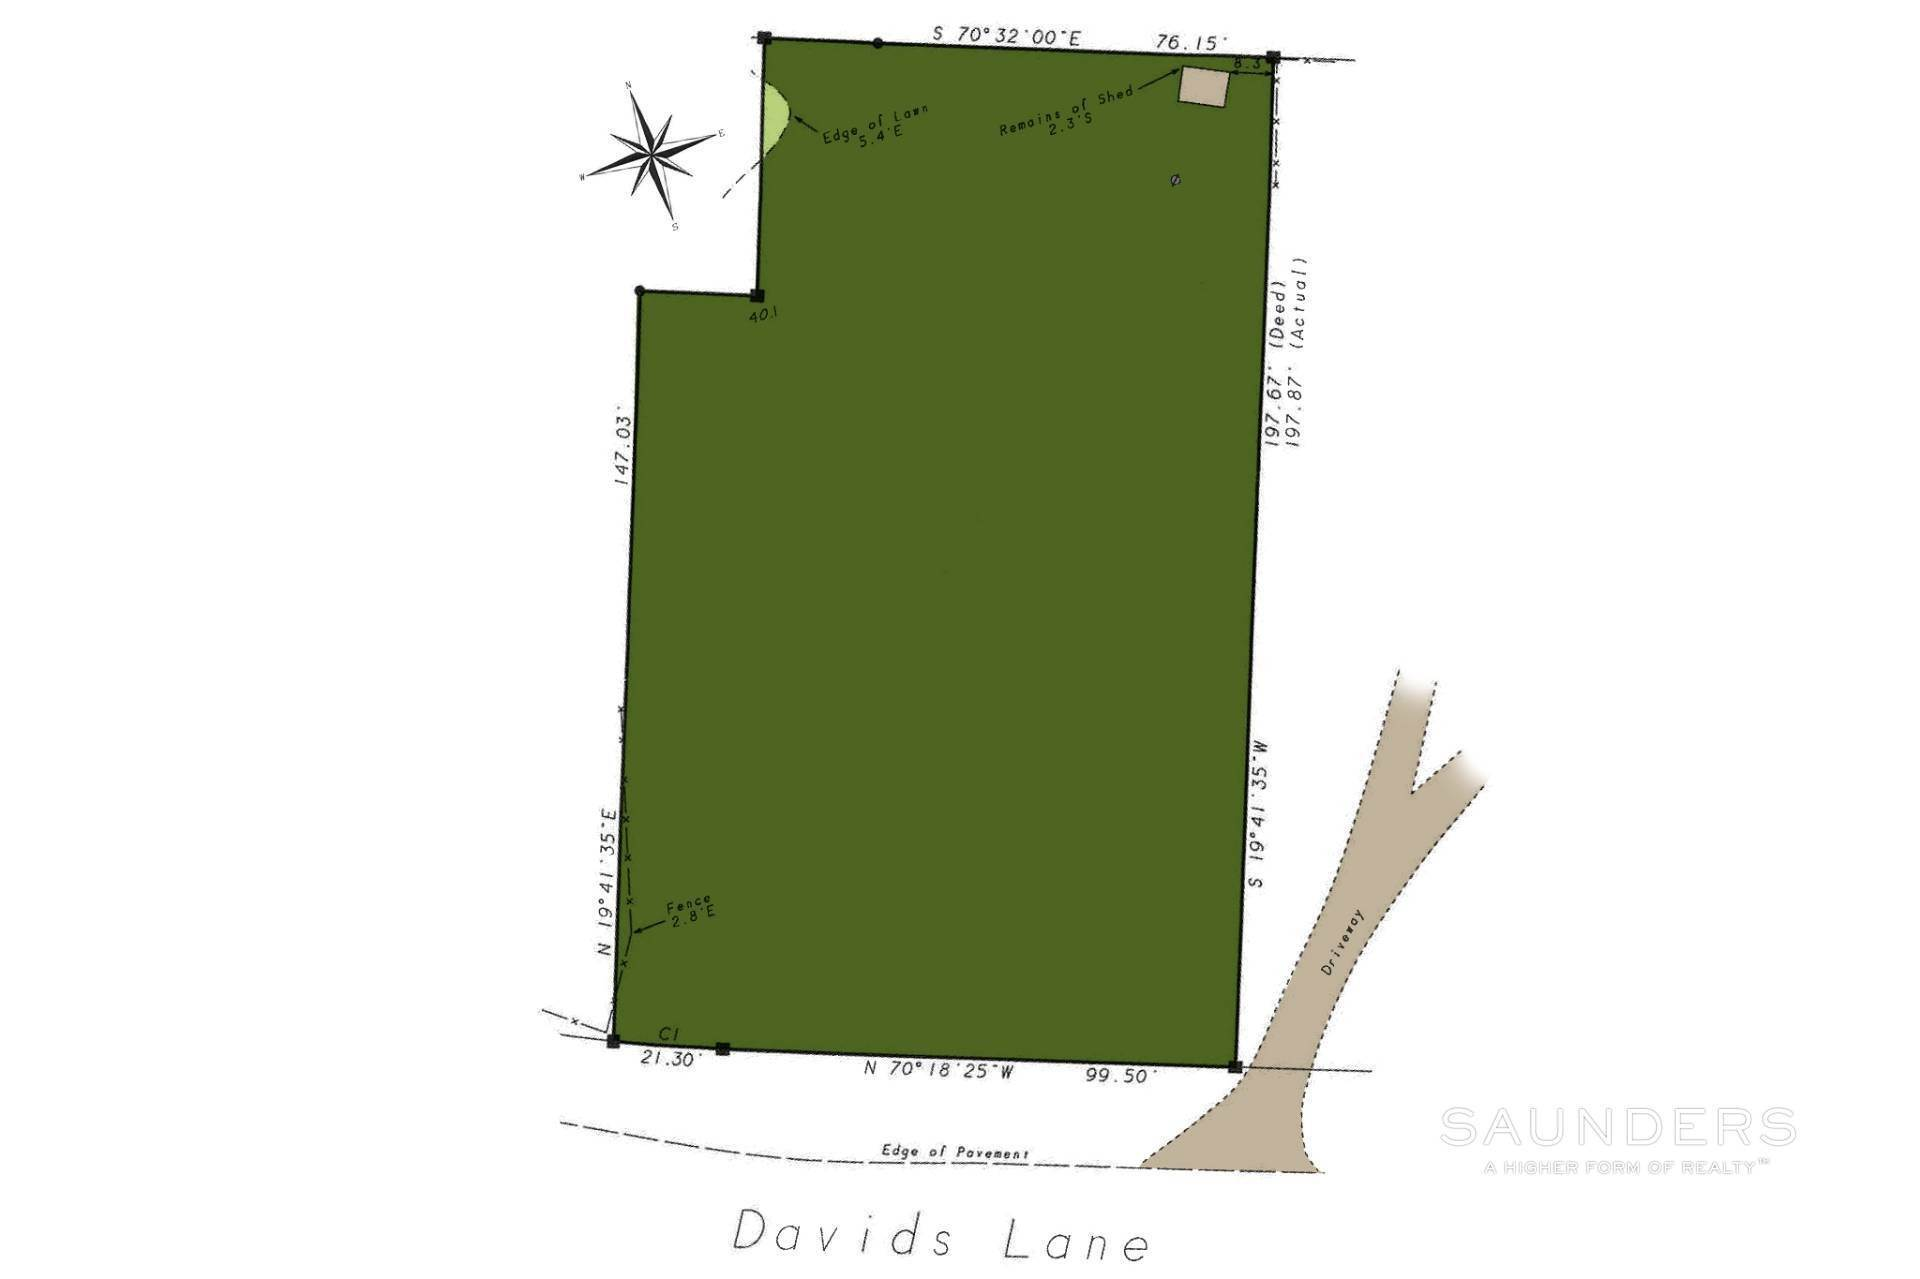 4. Land for Sale at East Hampton - Heart Of The Village 12 Davids Lane, East Hampton, East Hampton Town, NY 11937